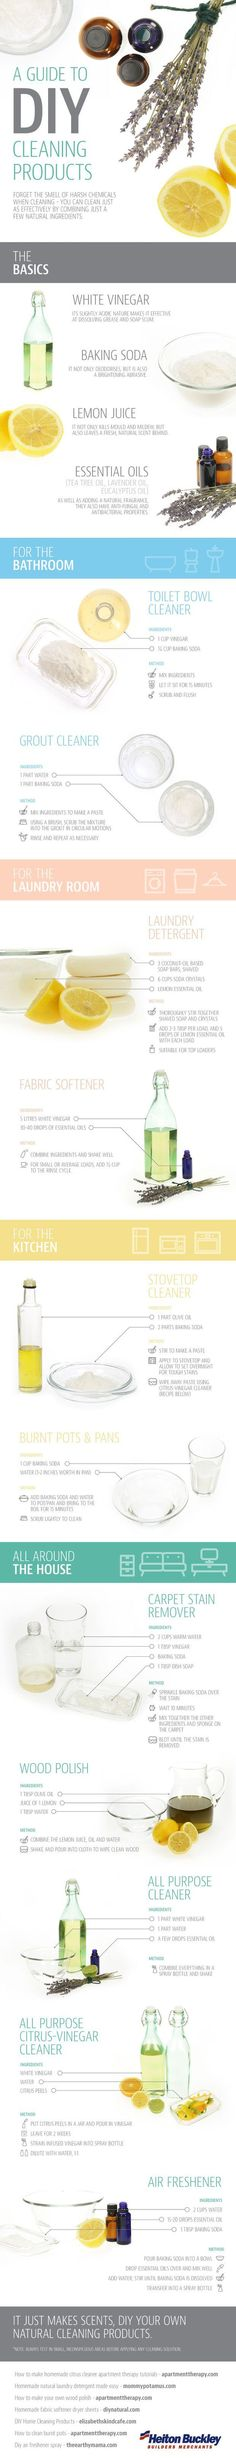 Homemade Green Cleaning Recipes With doTERRA Essential Oils. {Buy dōTERRA essential oils here: http://www.mydoterra.com/brittanyhutchings/}